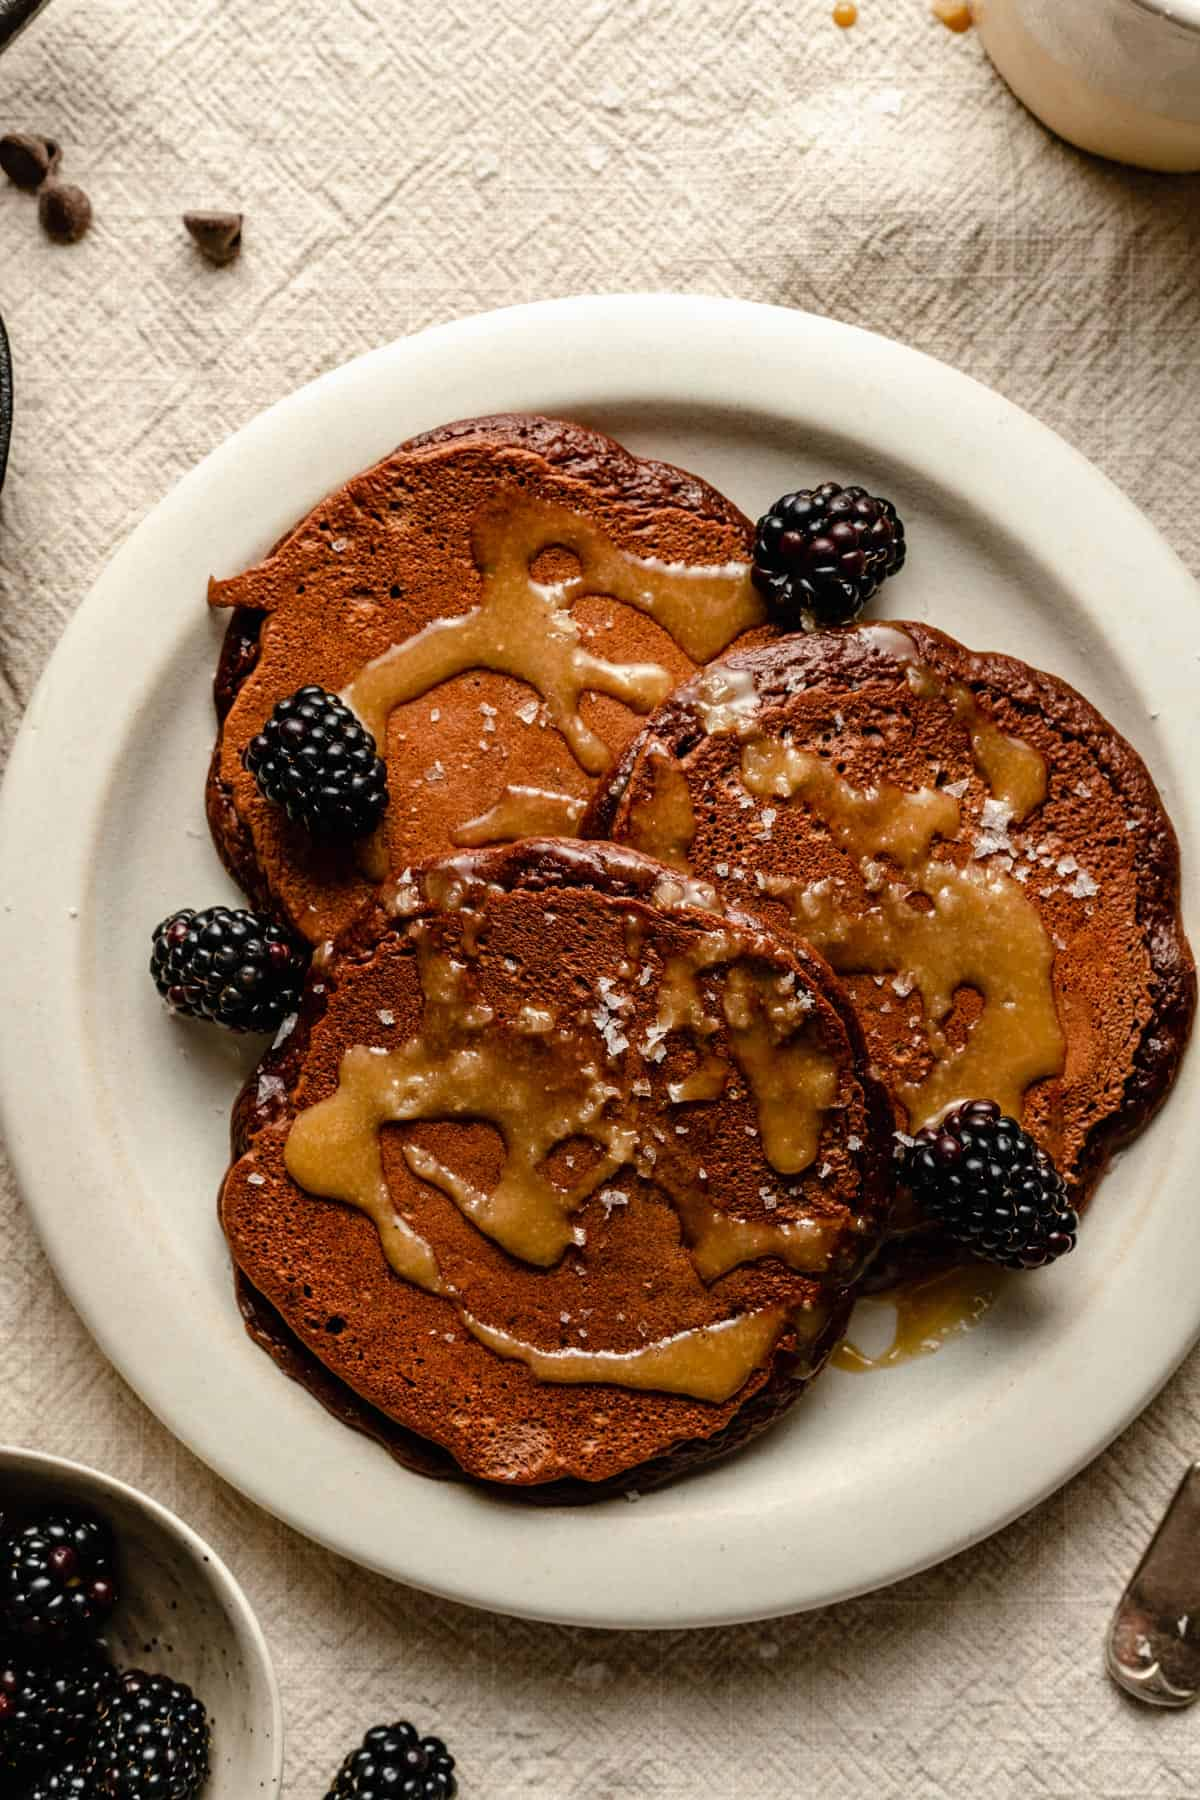 Pancakes topped with syrup, blackberries and flaky salt.